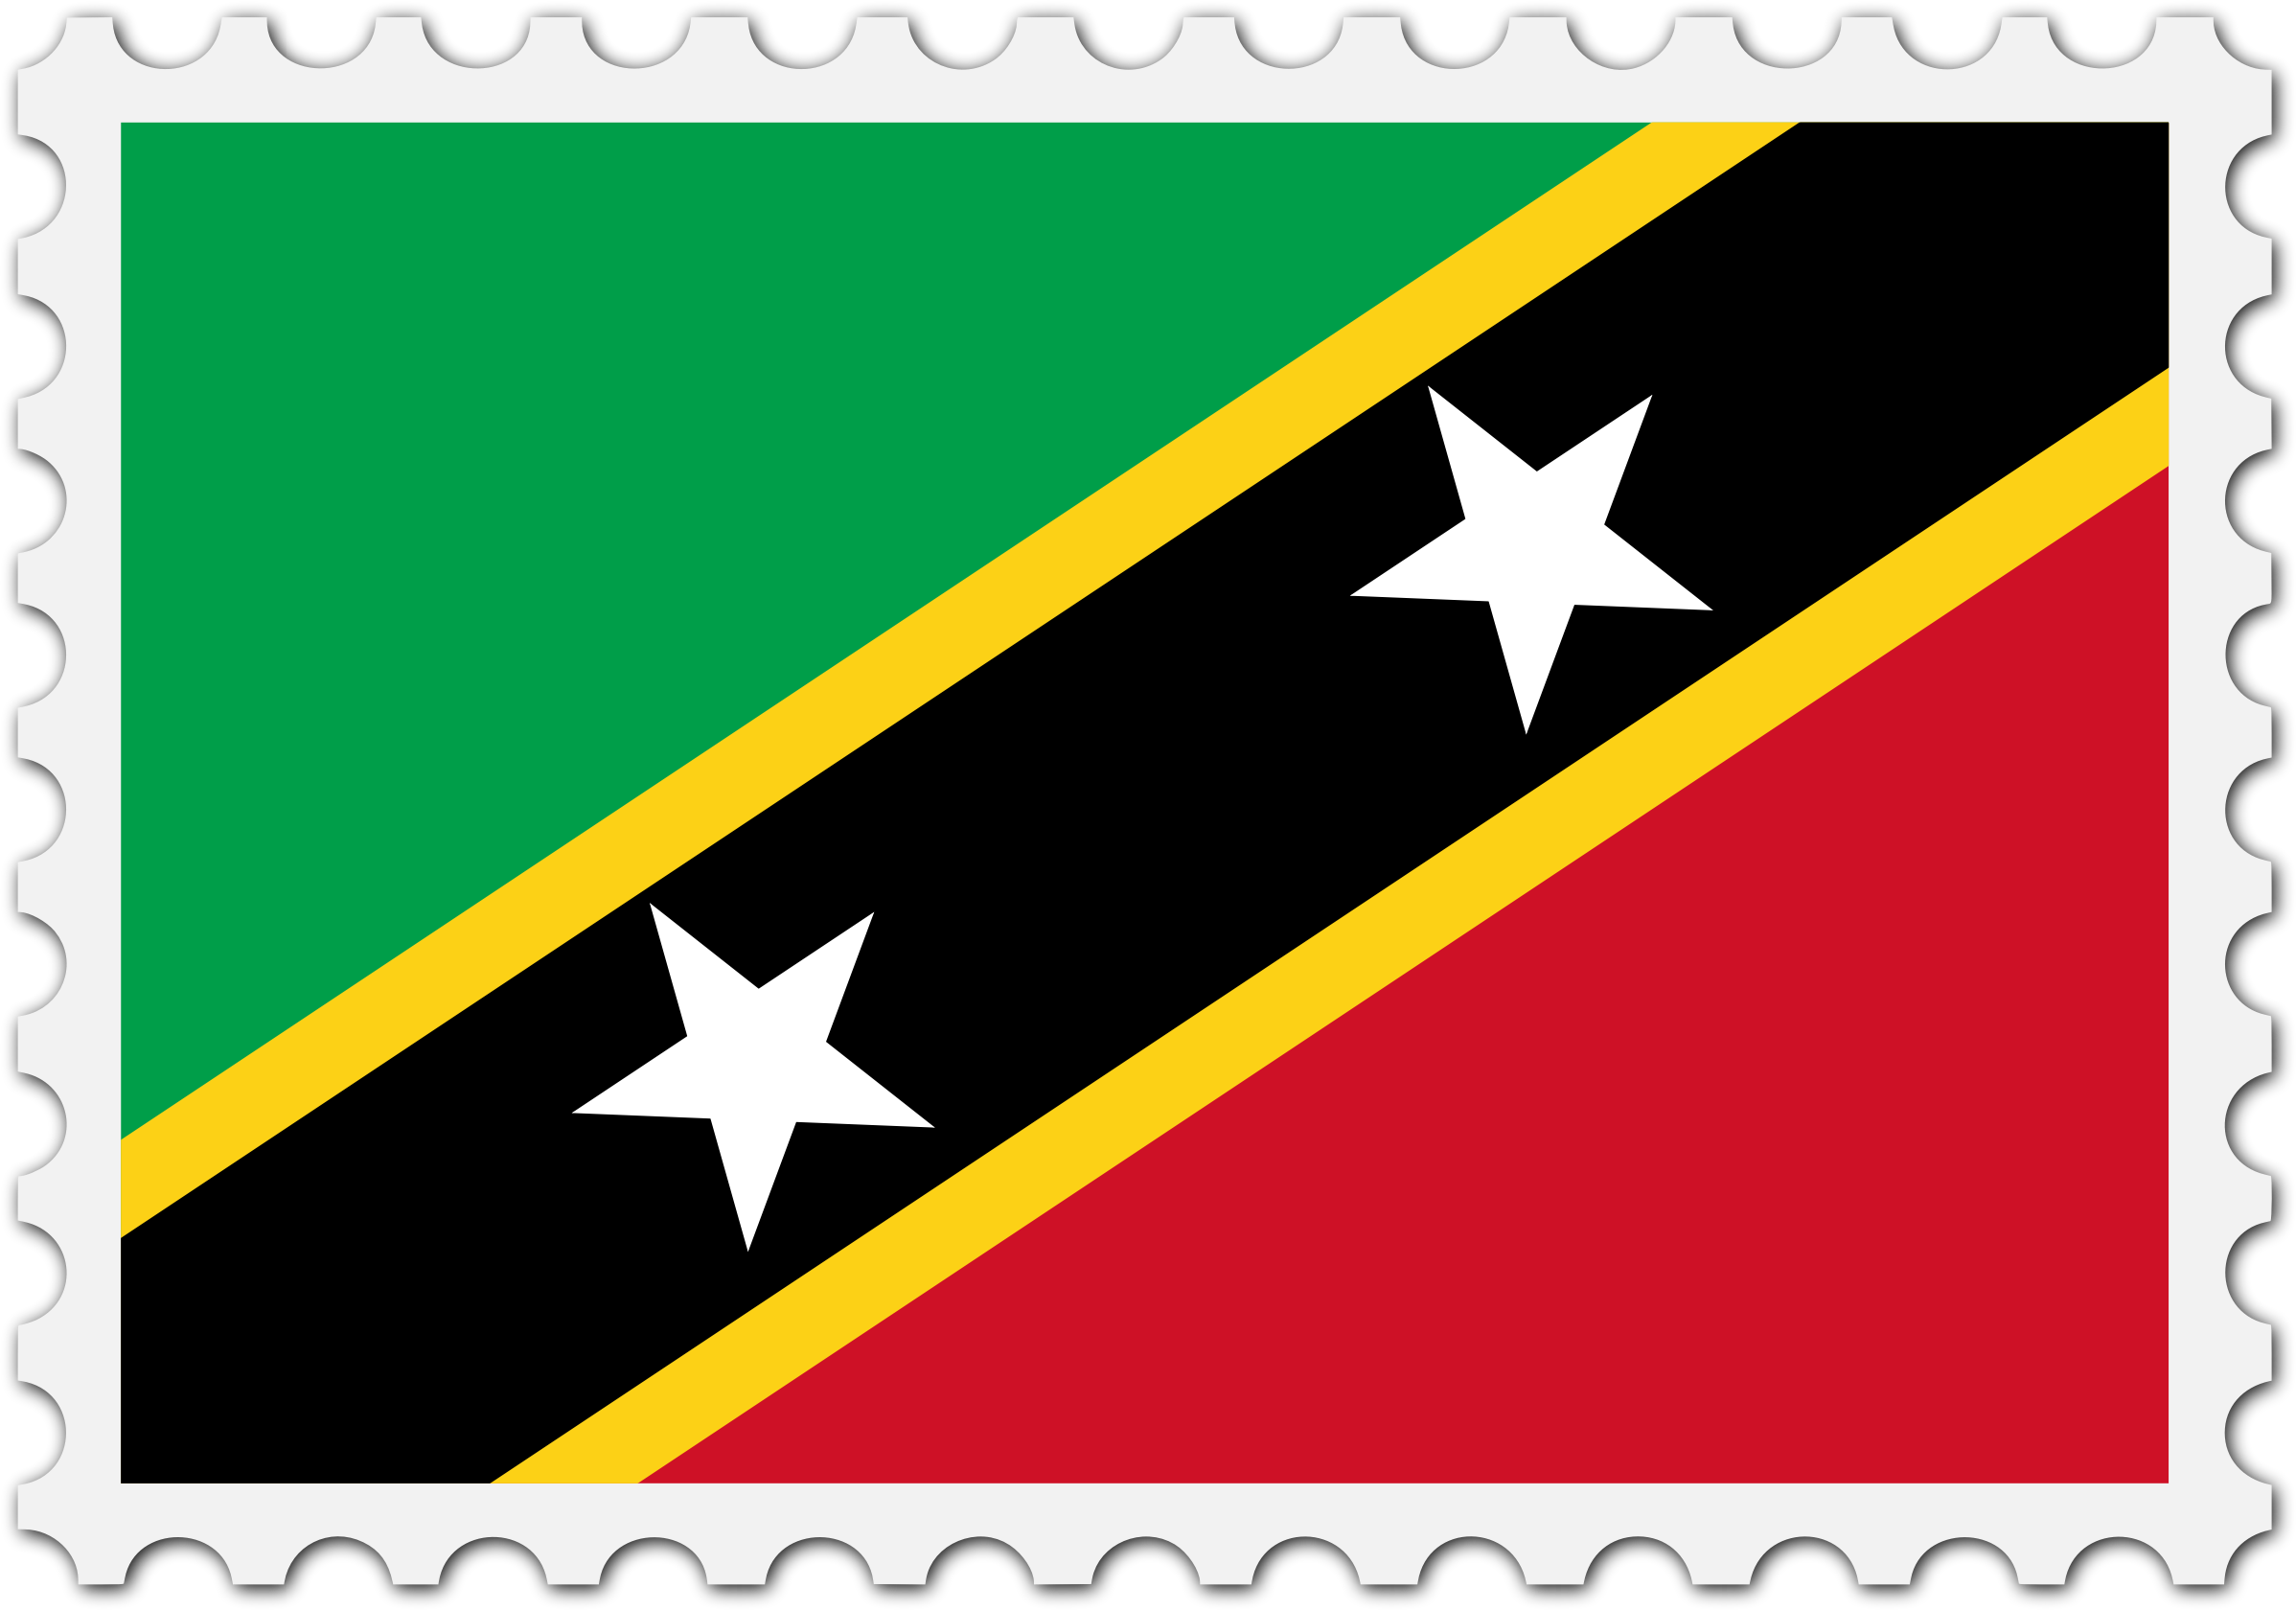 St Kitts and Nevis flag stamp by Firkin